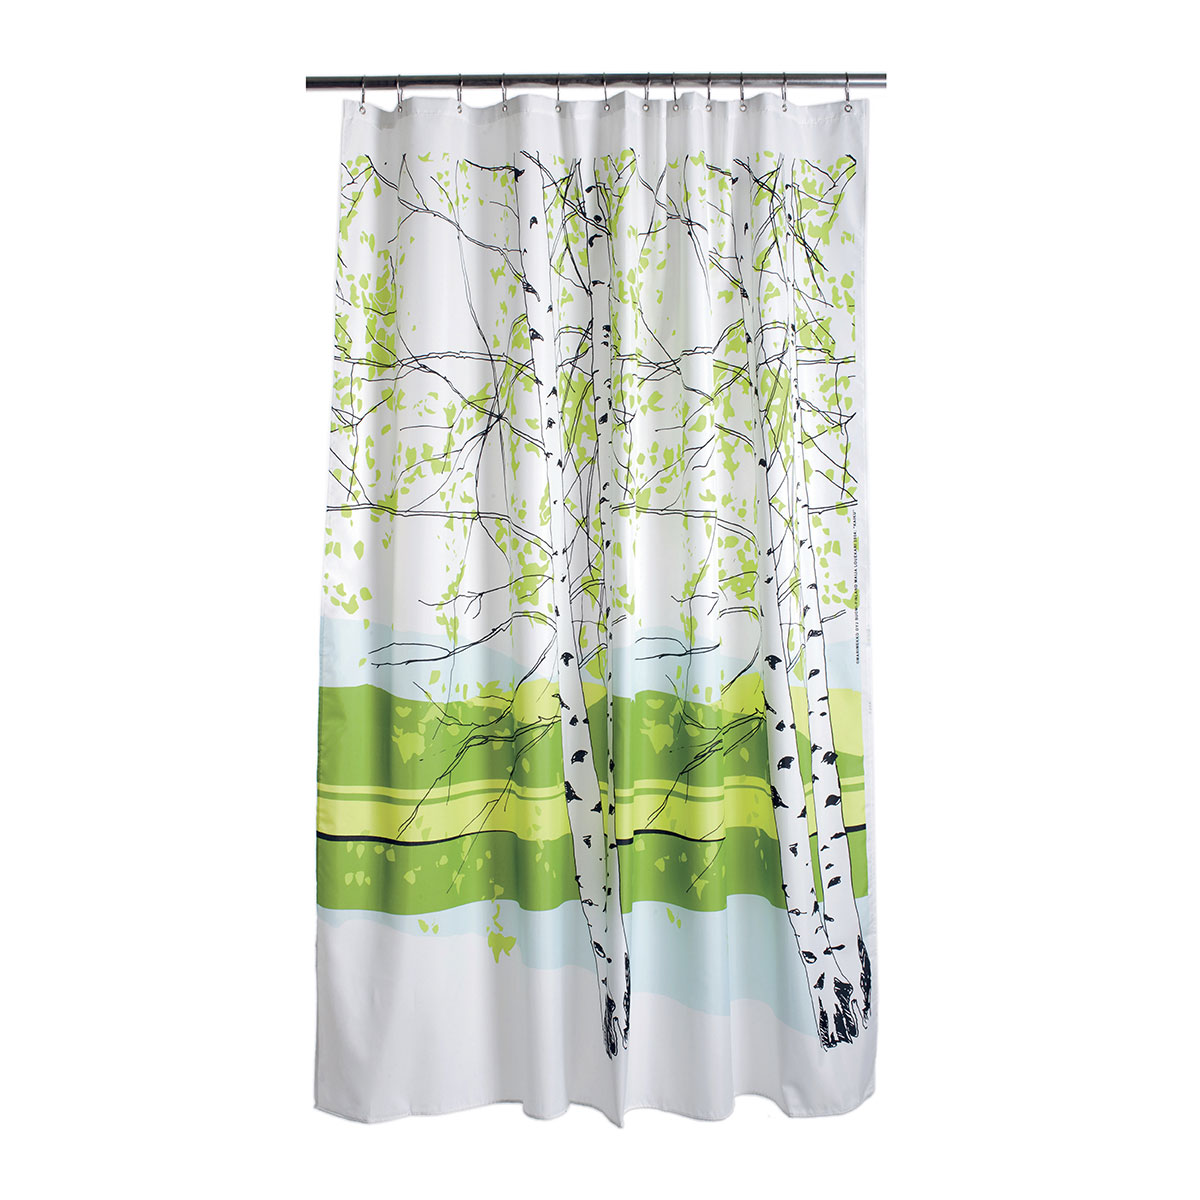 shower elena by apoc curtain design classic curtains marimekko